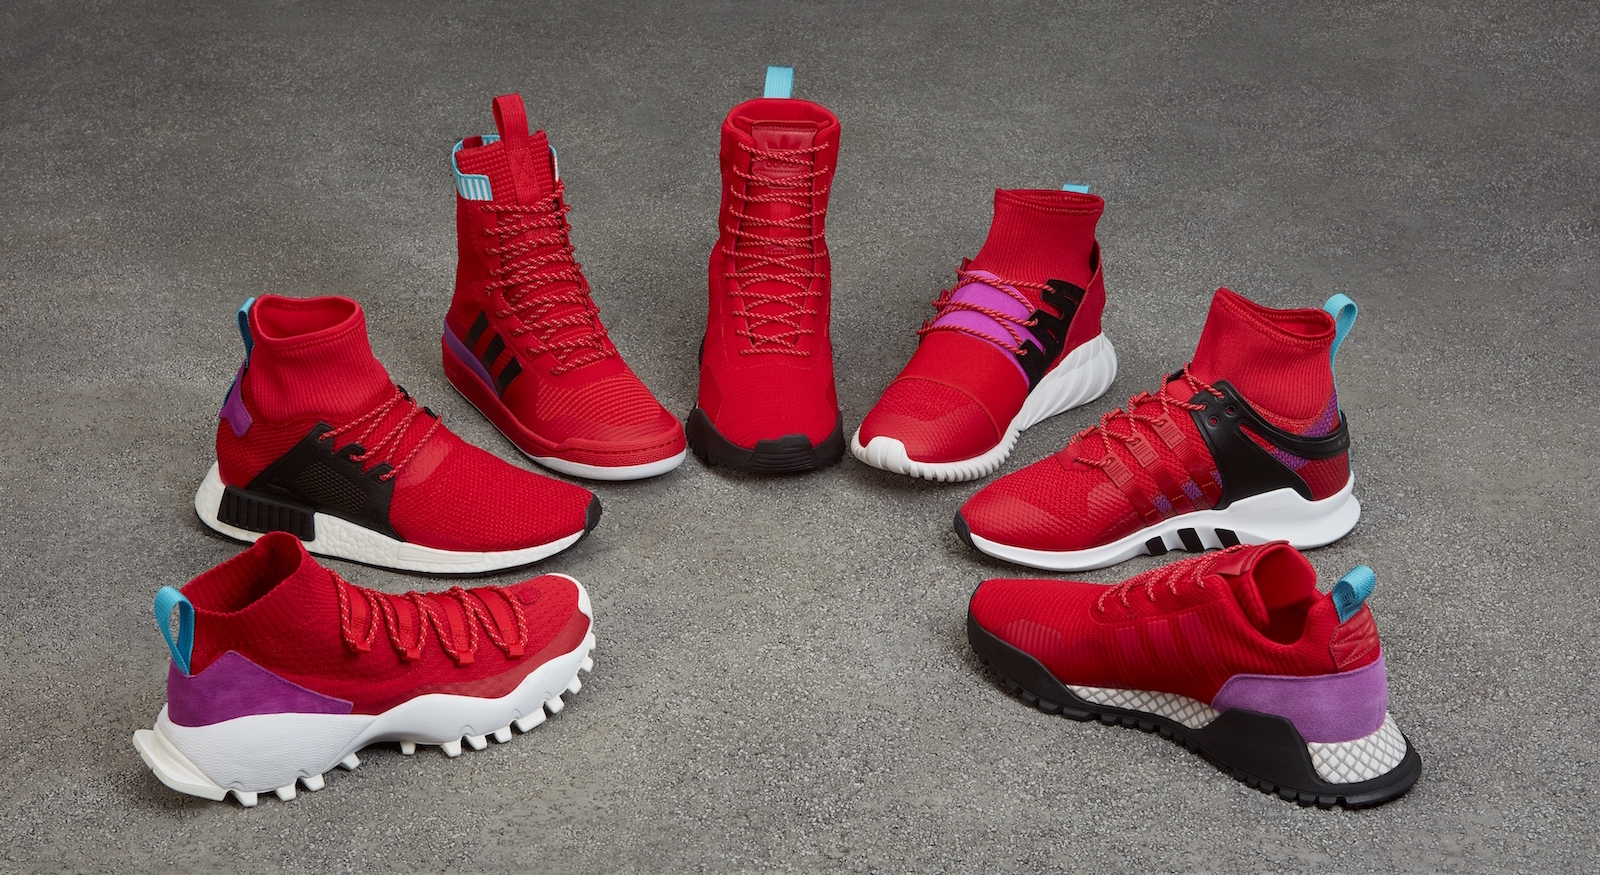 pretty nice 1c82e 01dbe adidas Originals Unveils Winter Scarlet/Shock Purple Pack ...